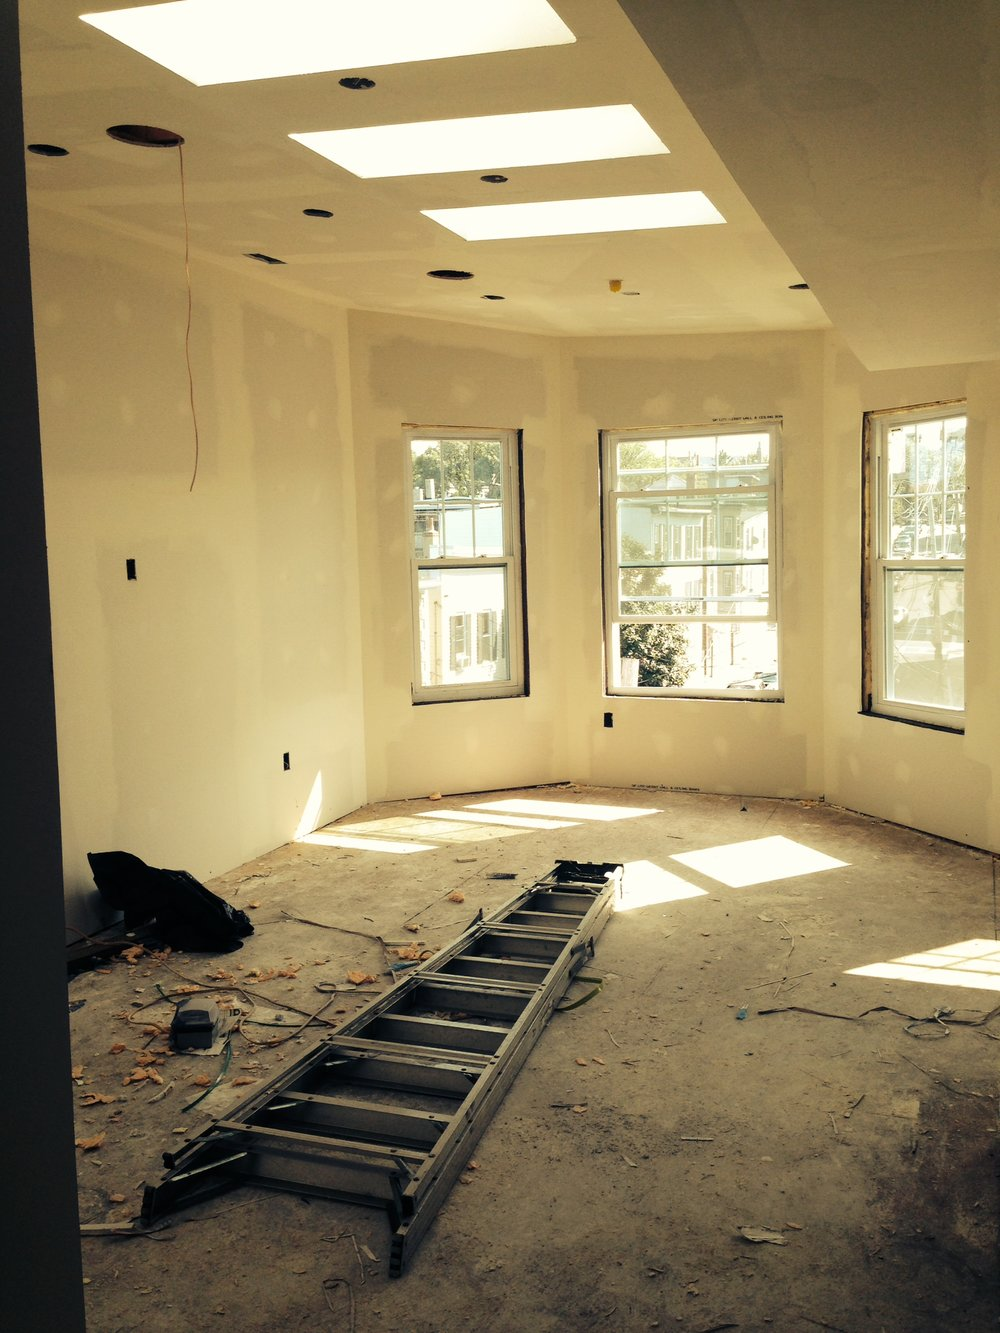 Putting up new drywall allows us to see our vision for a space become a reality.